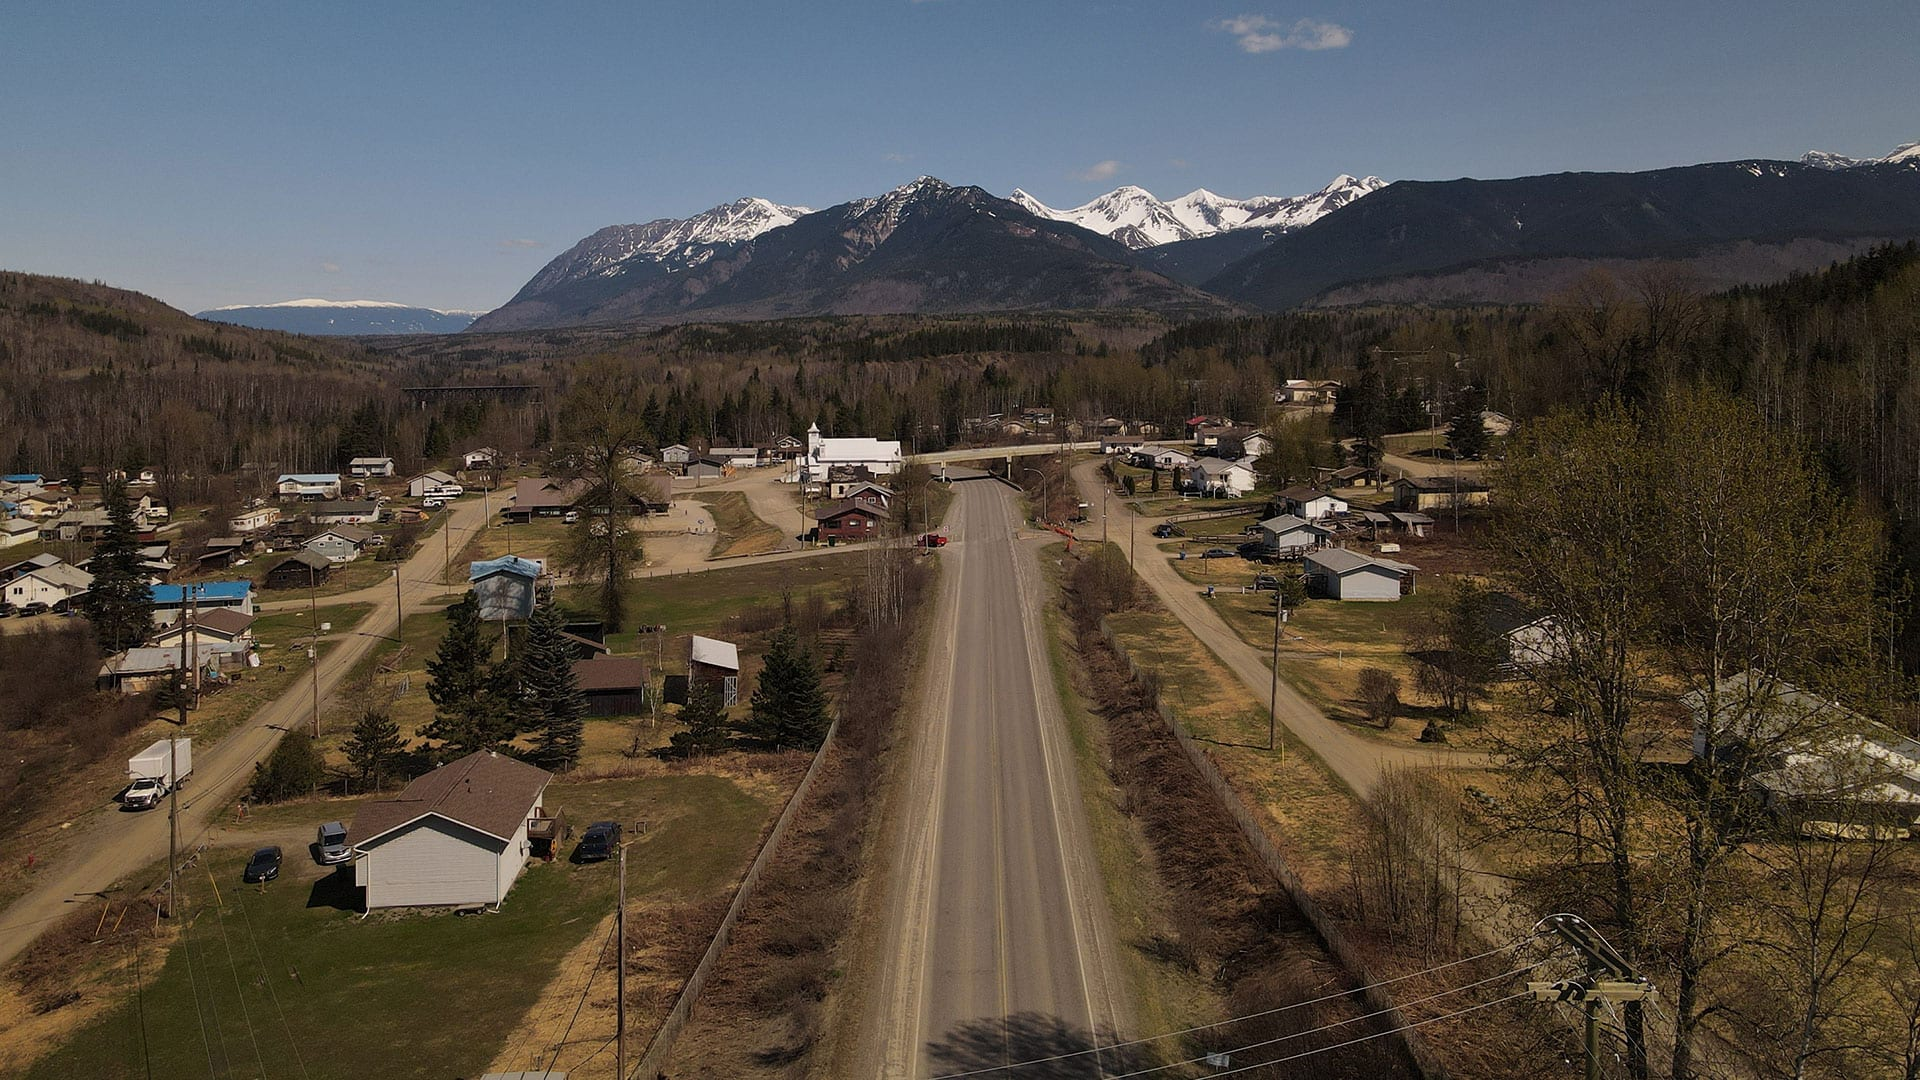 It took 15 years of advocacy to get cell coverage on Highway of Tears, and families say there is still much work to do